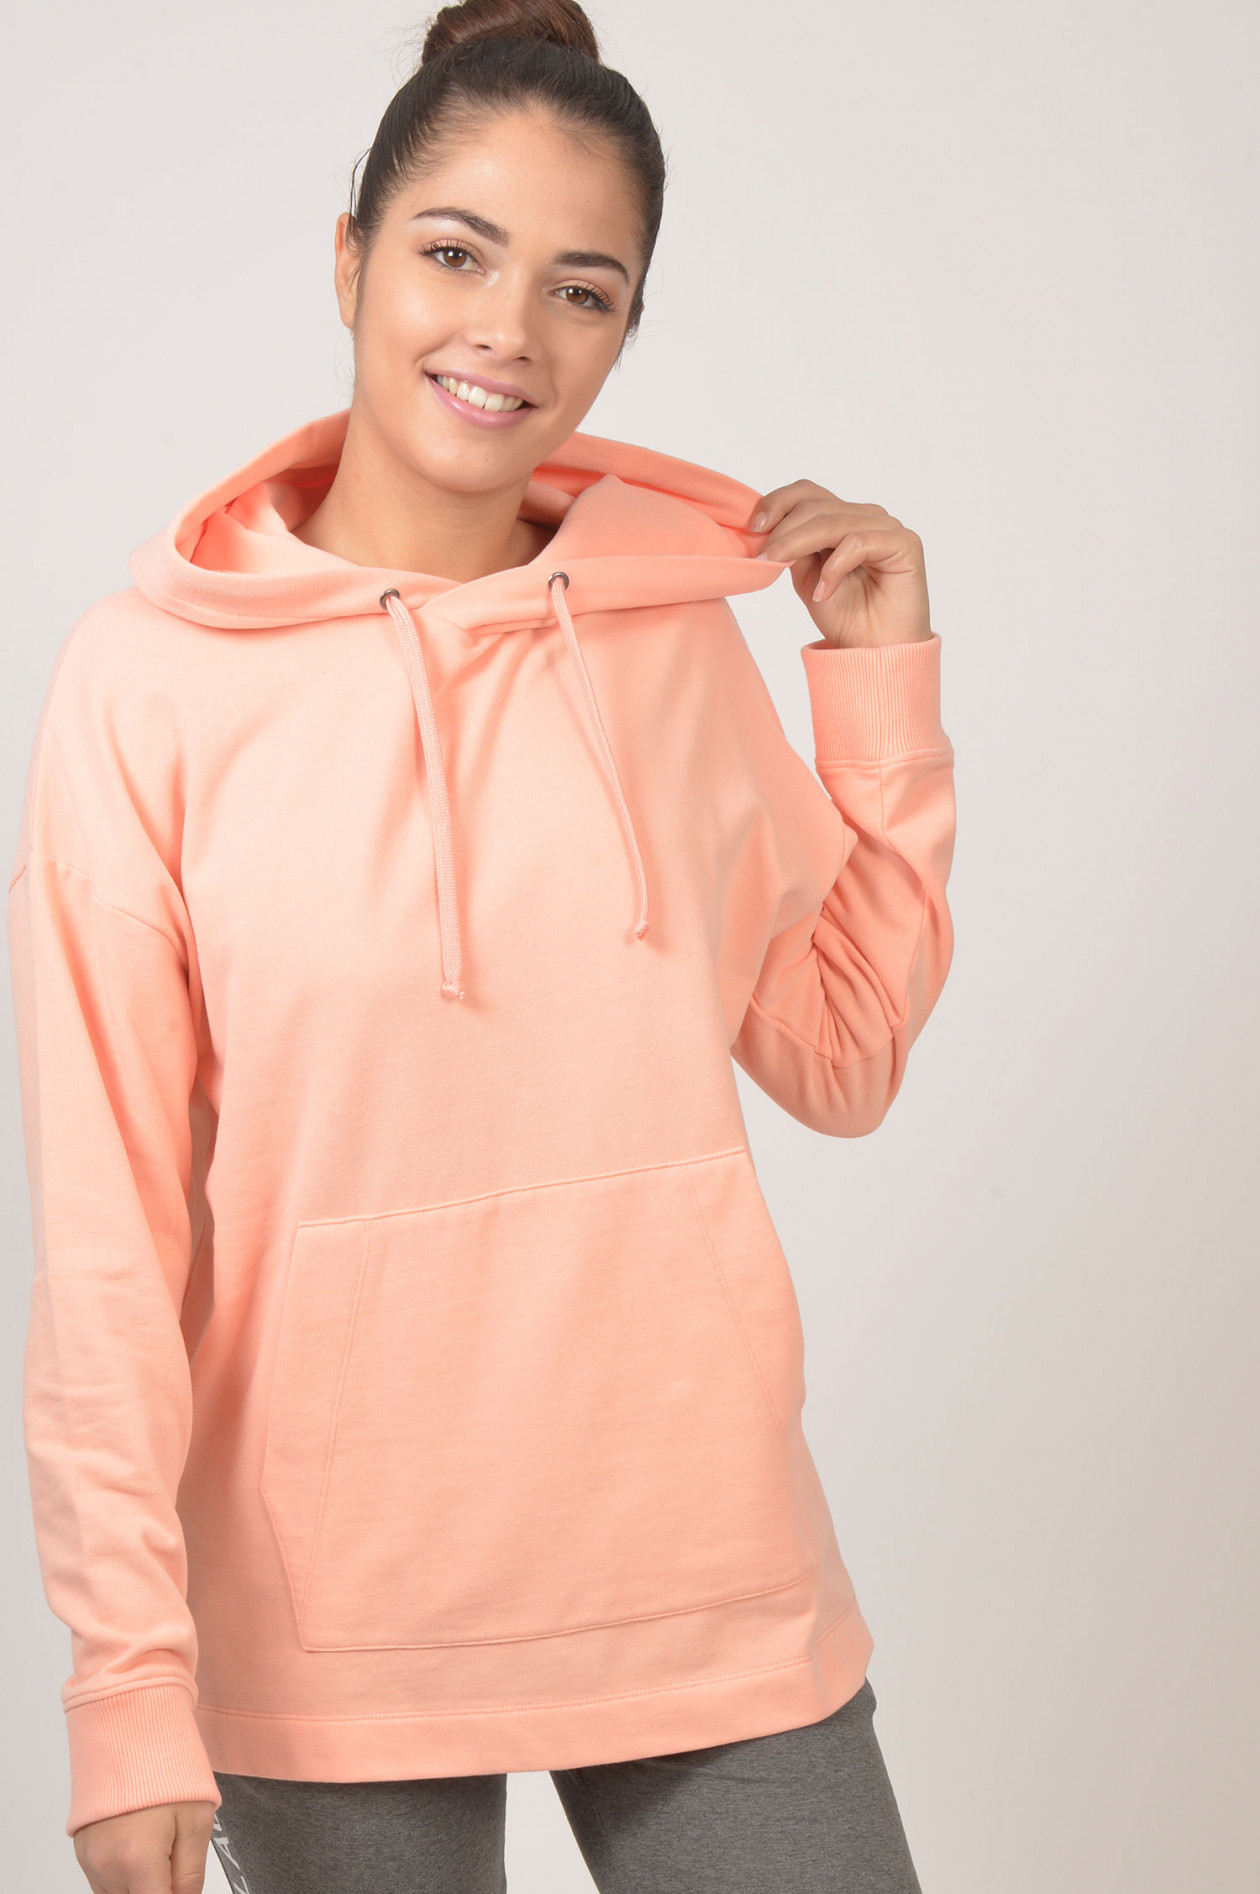 Juvia Sweatshirt mit Kapuze in Lachs | GRUENER.AT